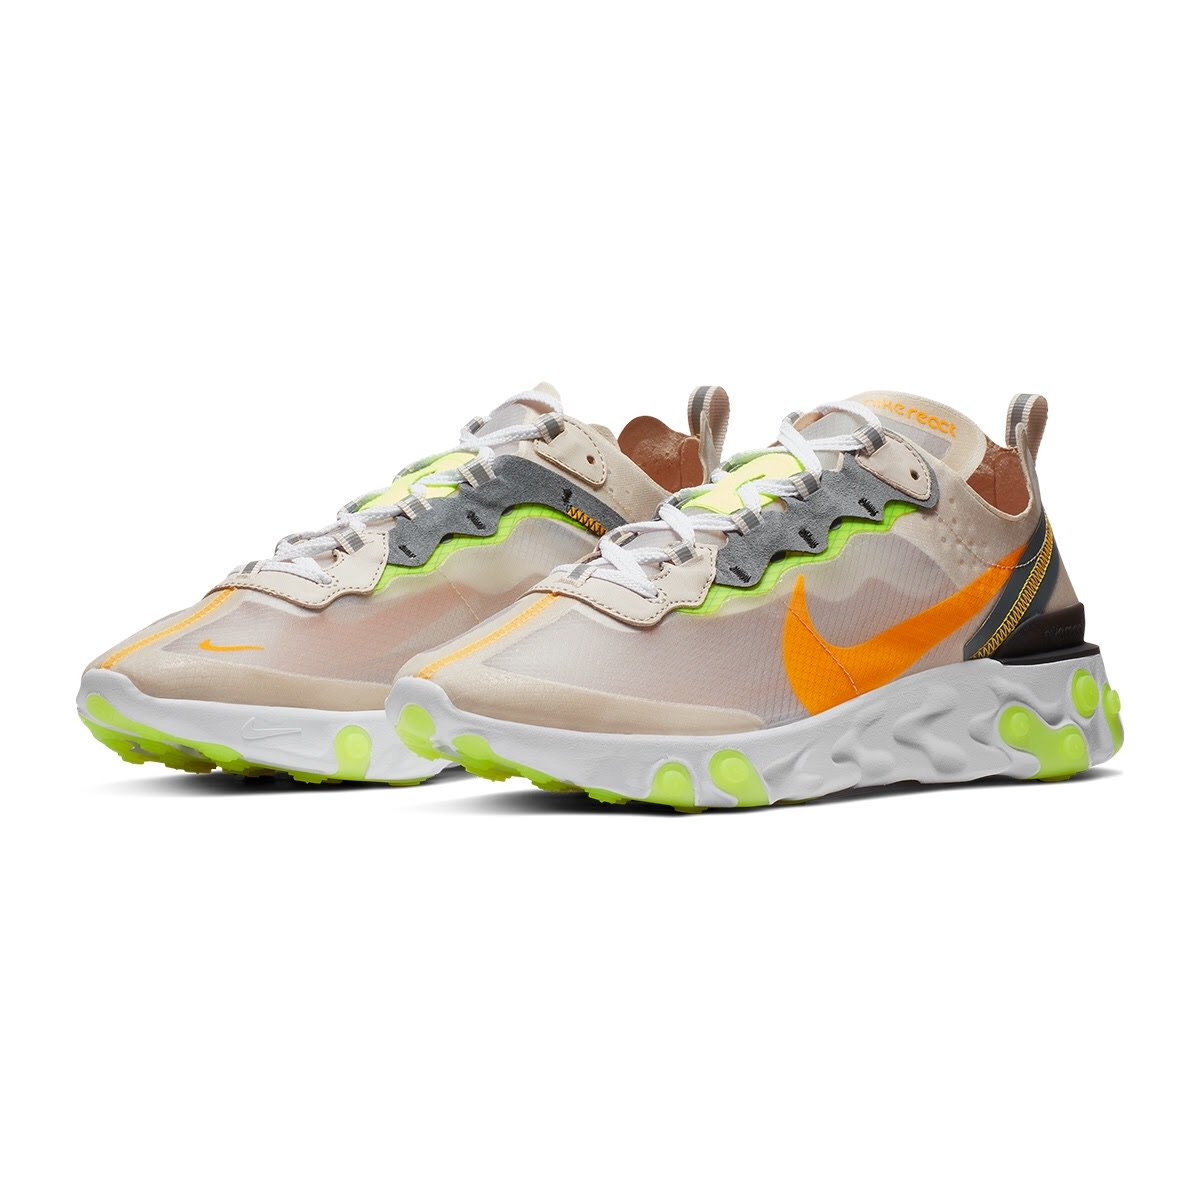 d7d42c57bdce Nike React Element 87 will be available TODAY (3 19) on http   CNCPTS.COM  at 11 00AM (EST)pic.twitter.com eKcvCWkYaS